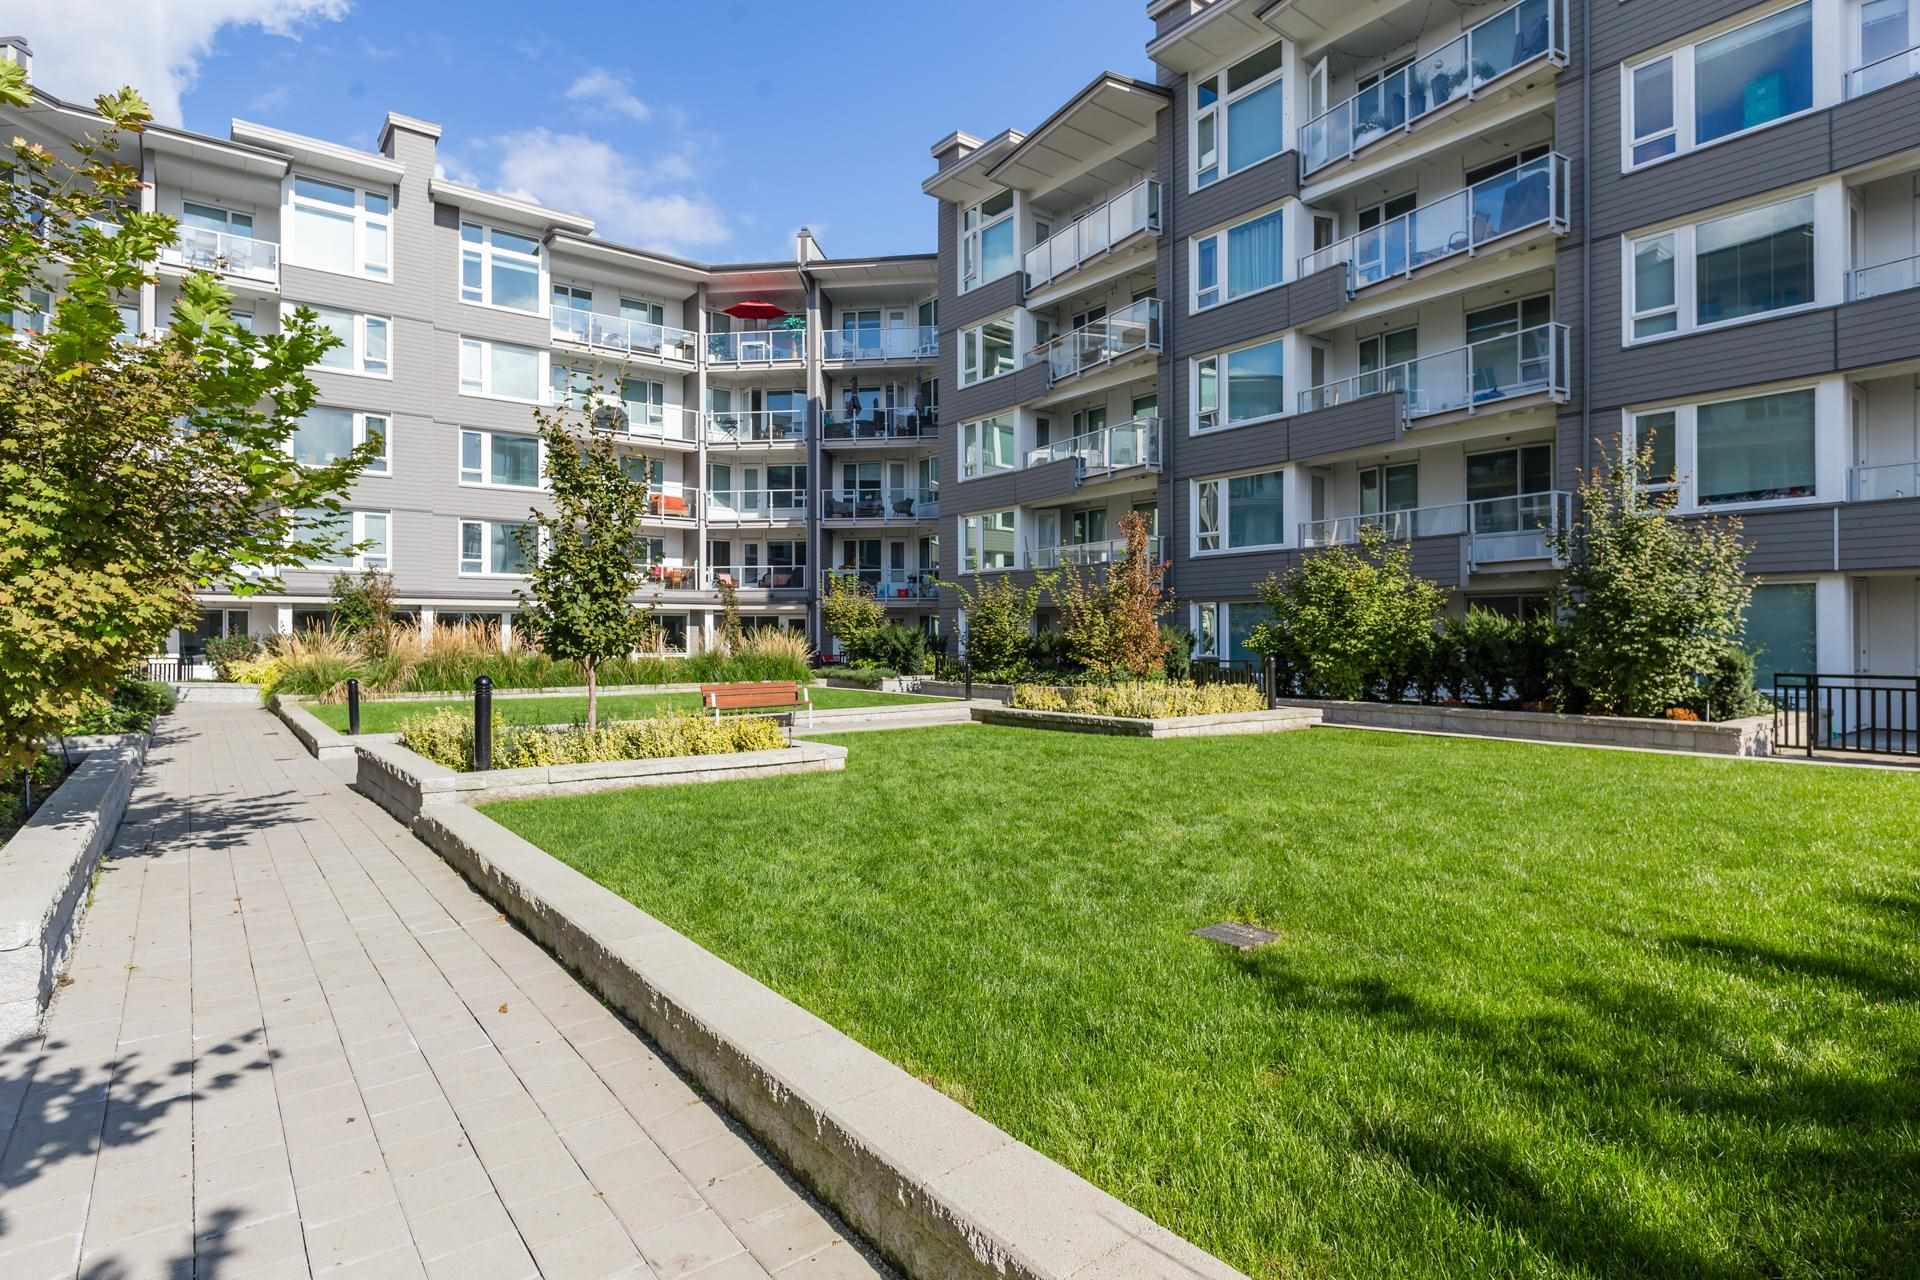 207 255 W 1ST STREET - Lower Lonsdale Apartment/Condo for sale, 2 Bedrooms (R2603882) - #28